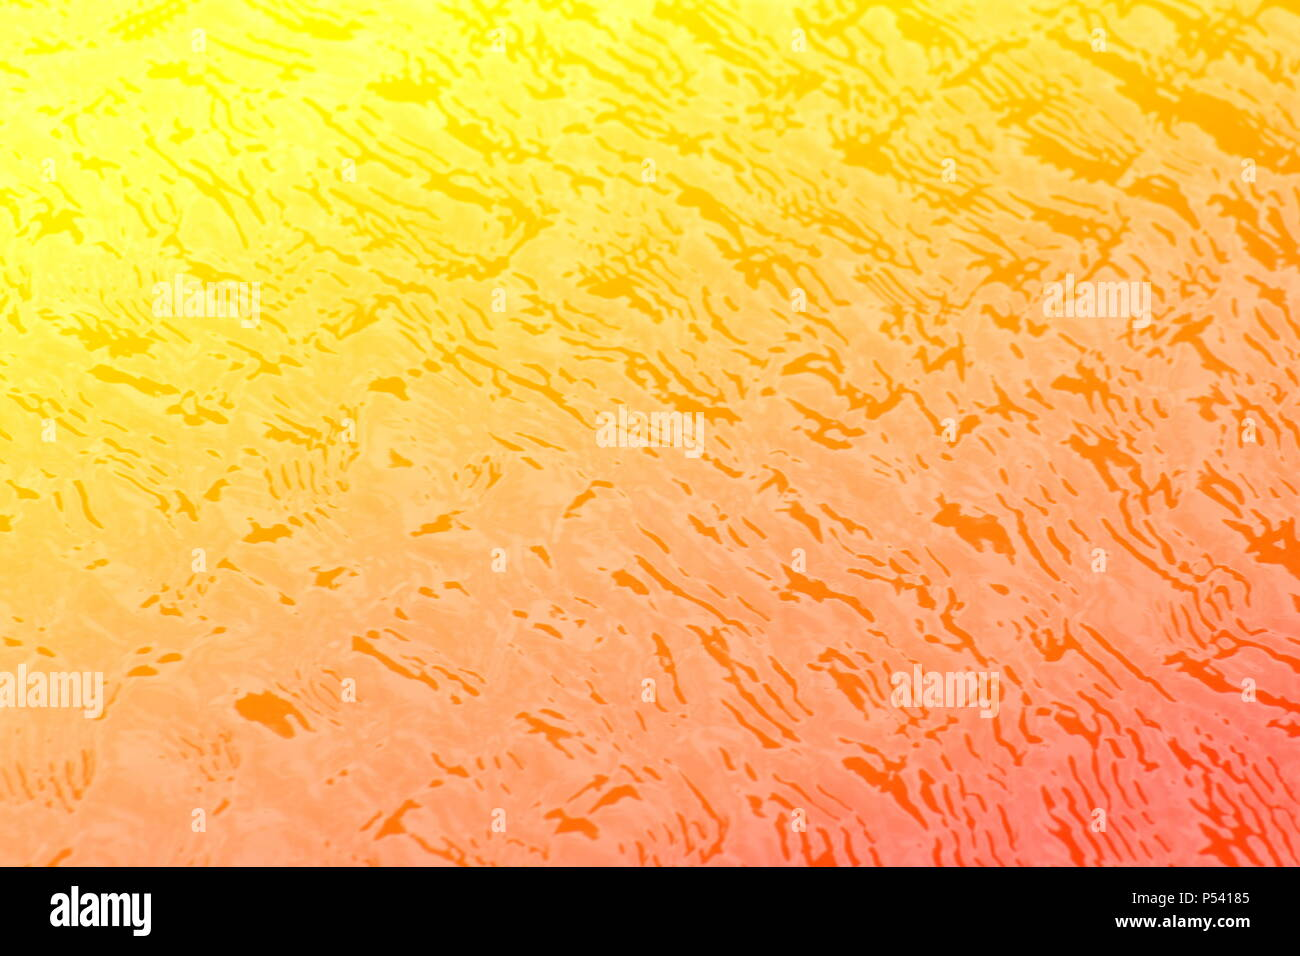 Abstract background of colorful ripples on water. - Stock Image